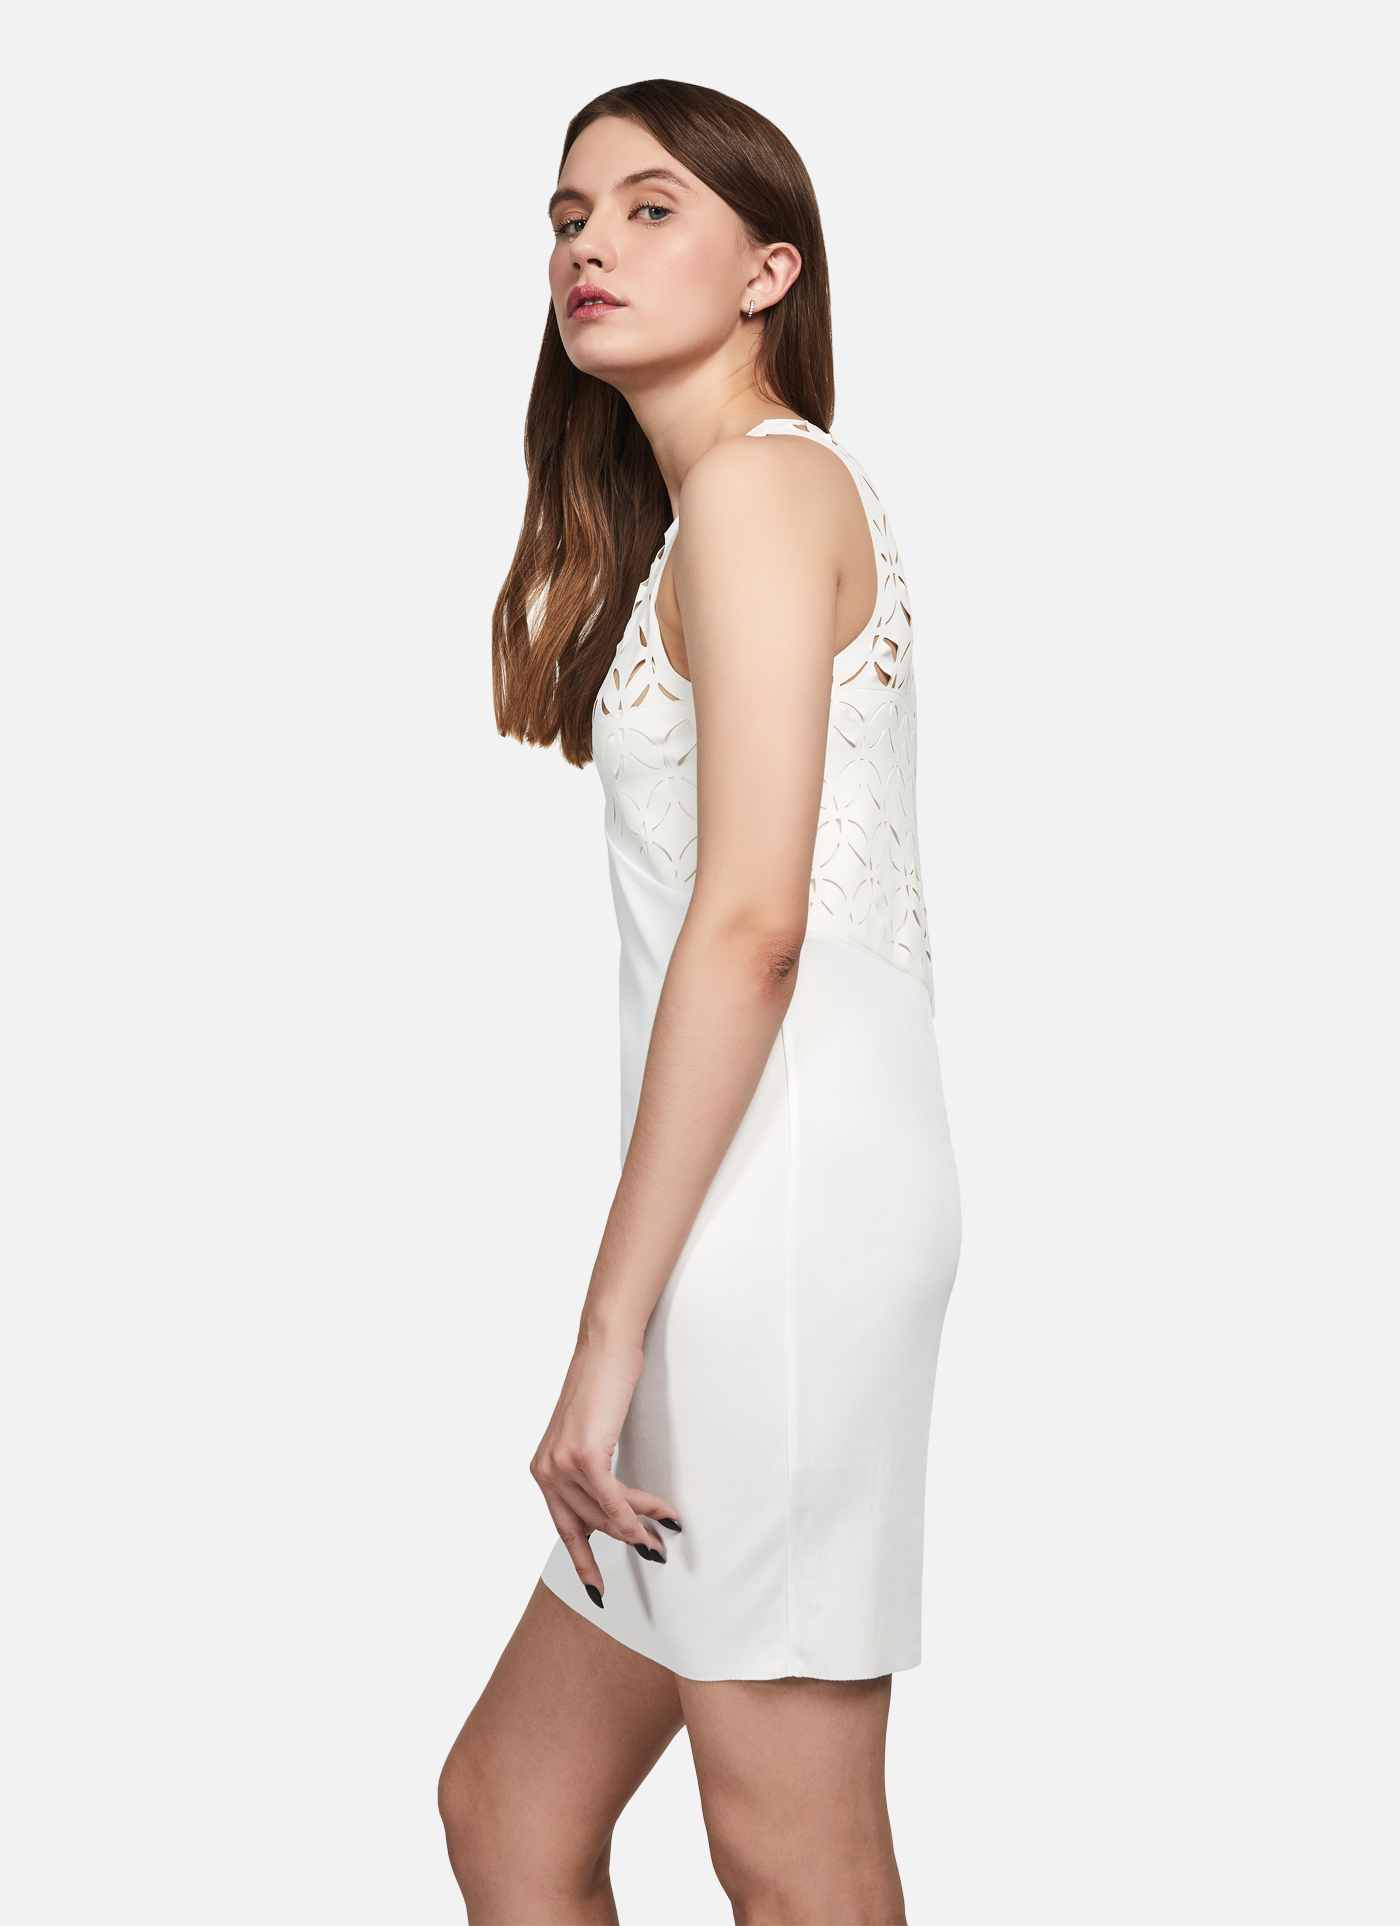 Home / ALL / TANK TOP DRESS IN WHITE VISCOSE